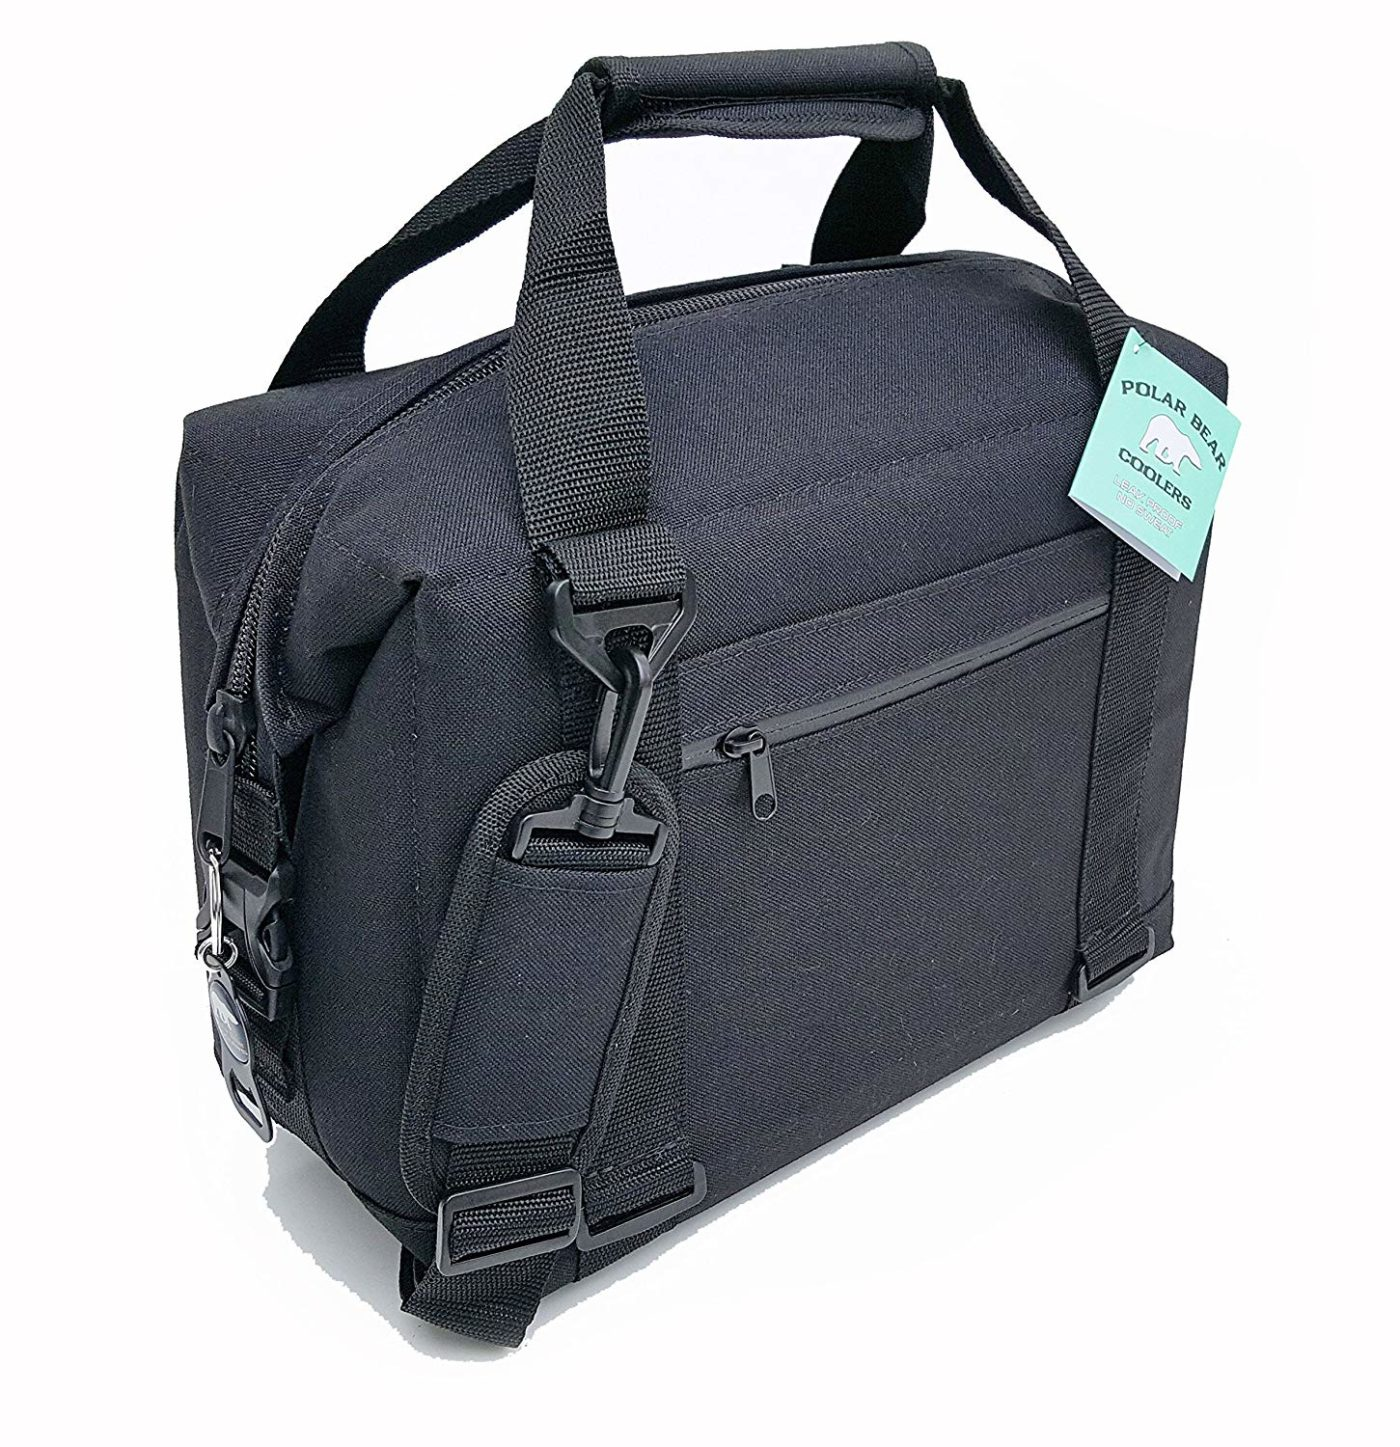 Polar Bear Cooler Bag